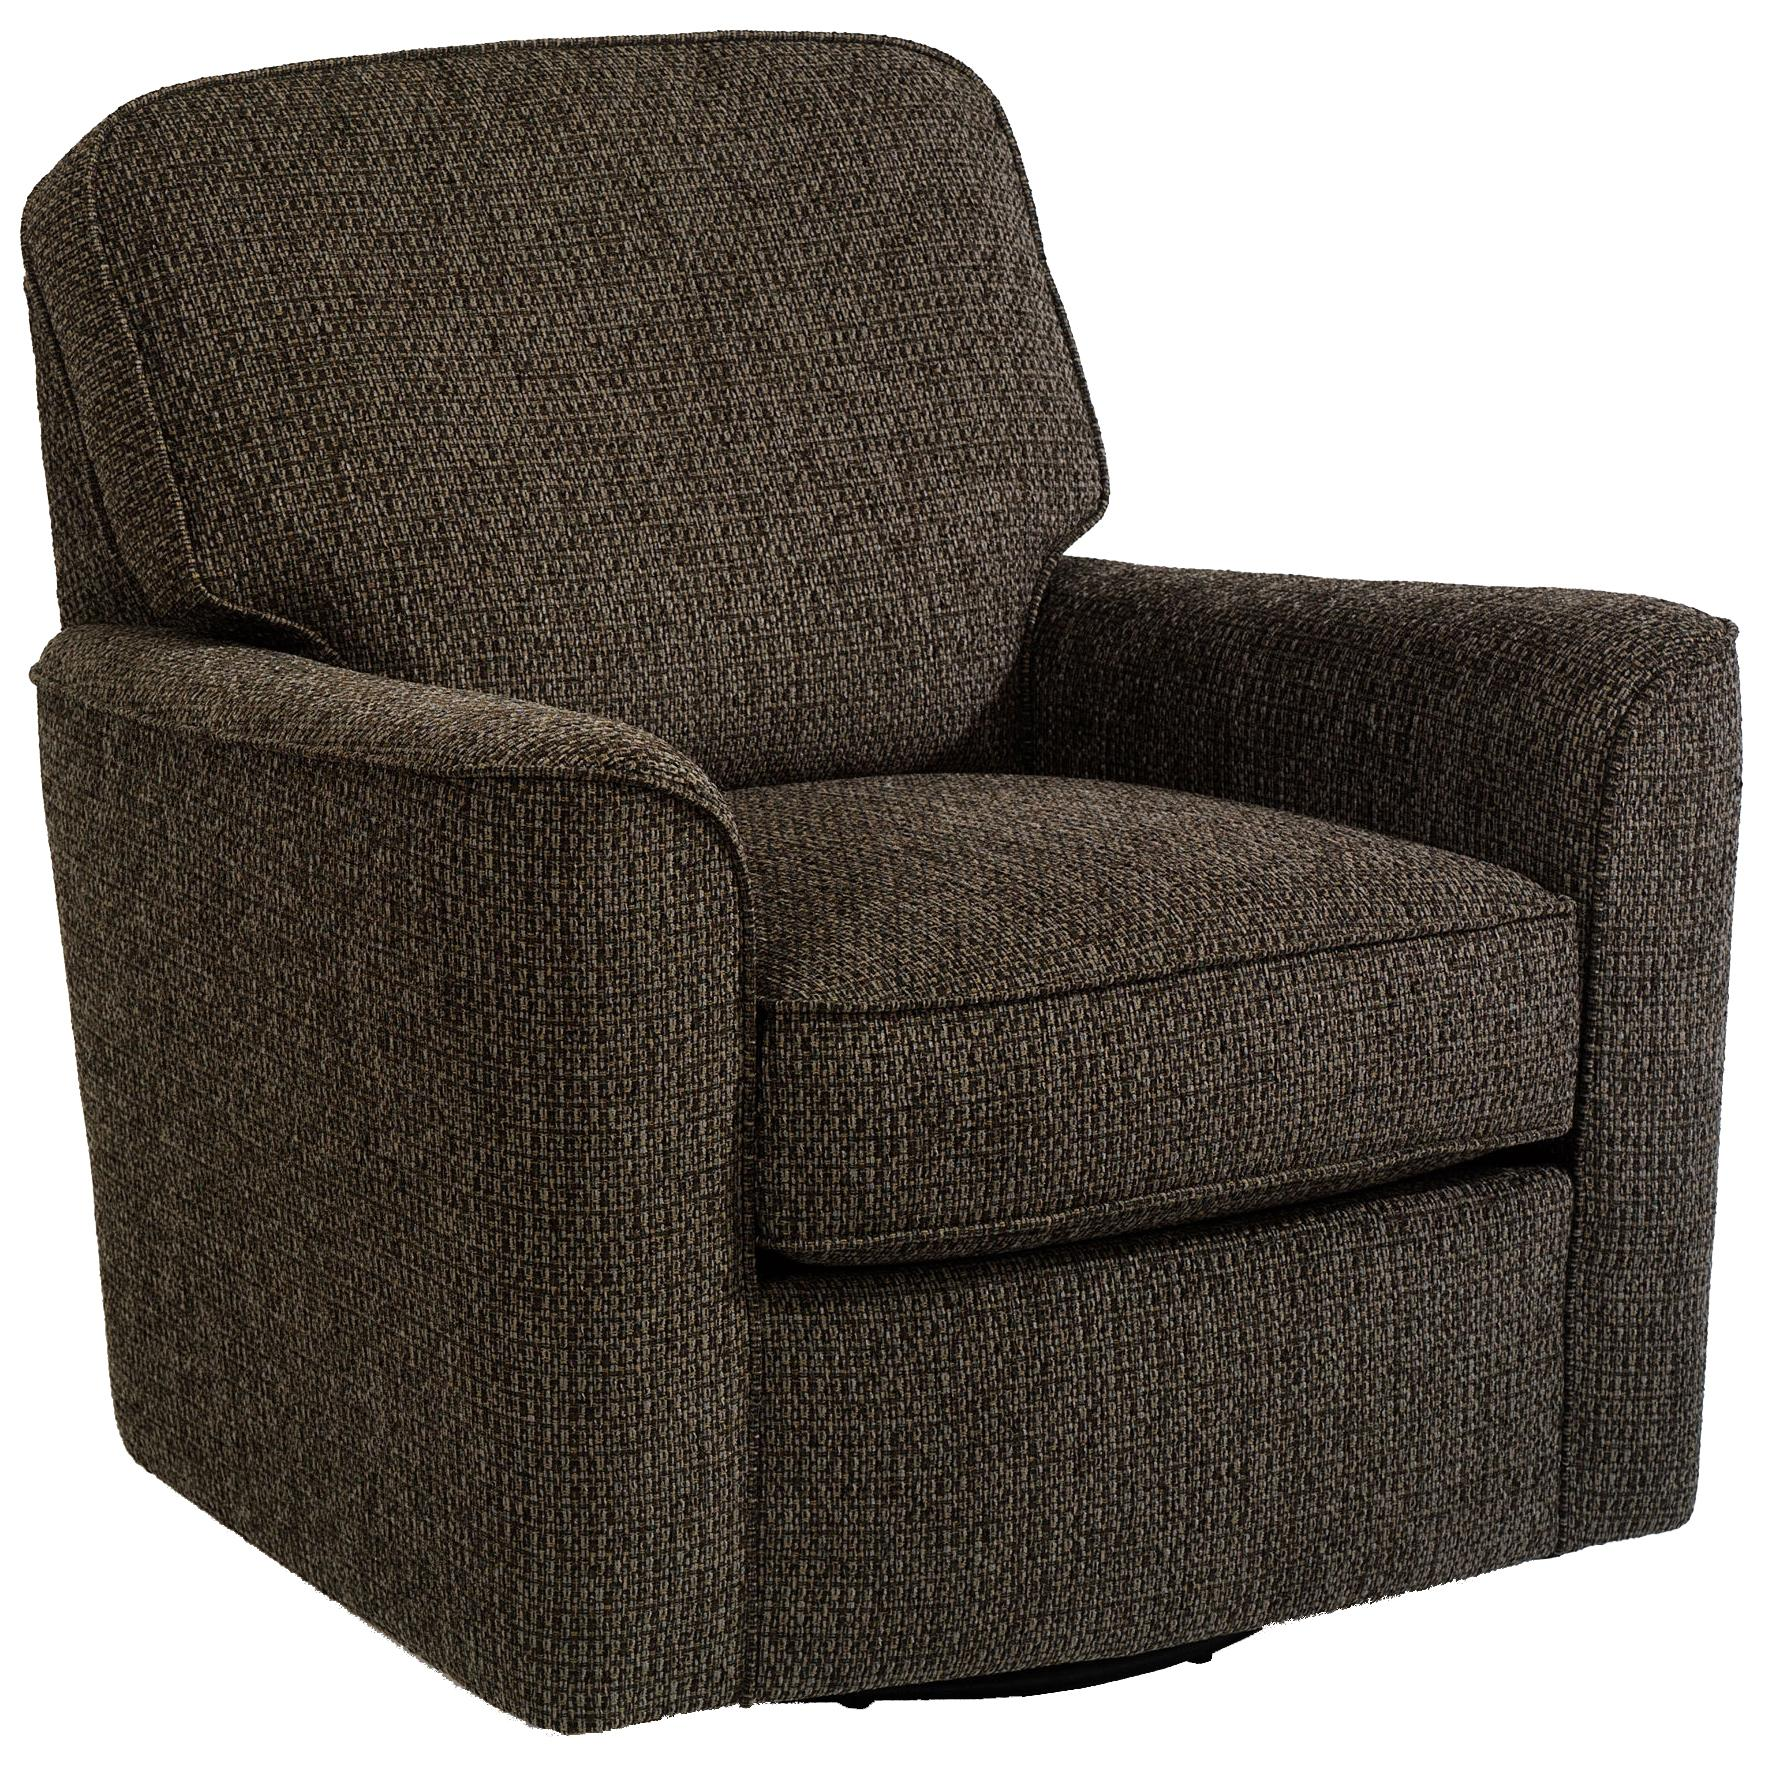 Upholstered Glider Chair Flexsteel Darby 022c 13 Upholstered Swivel Glider Dunk